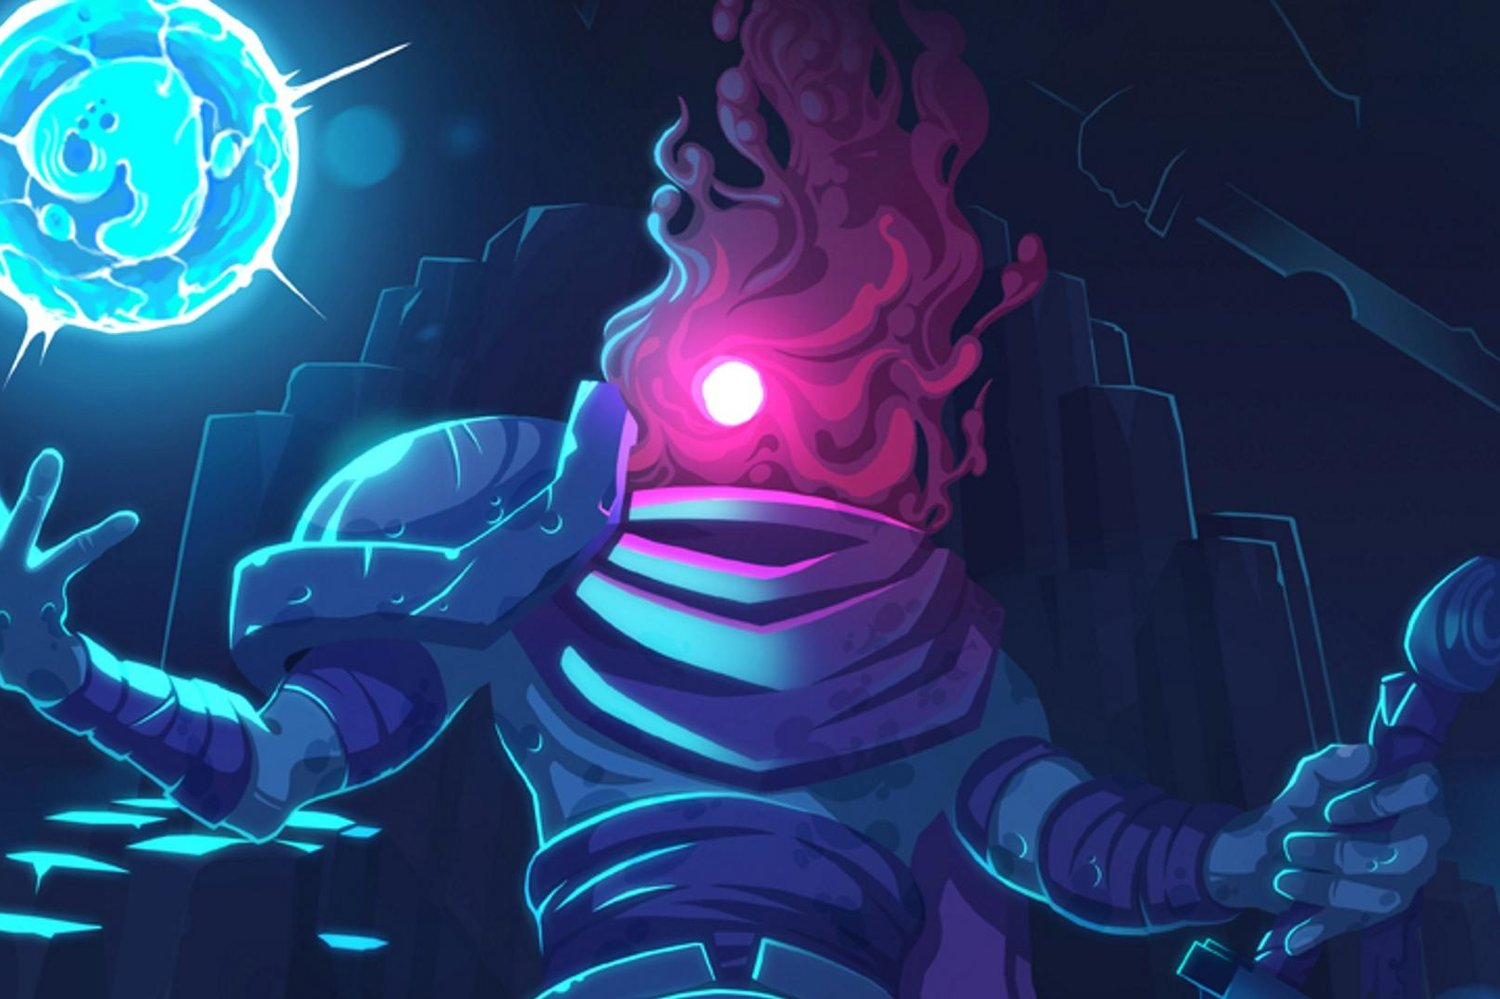 Dead Cells image cool